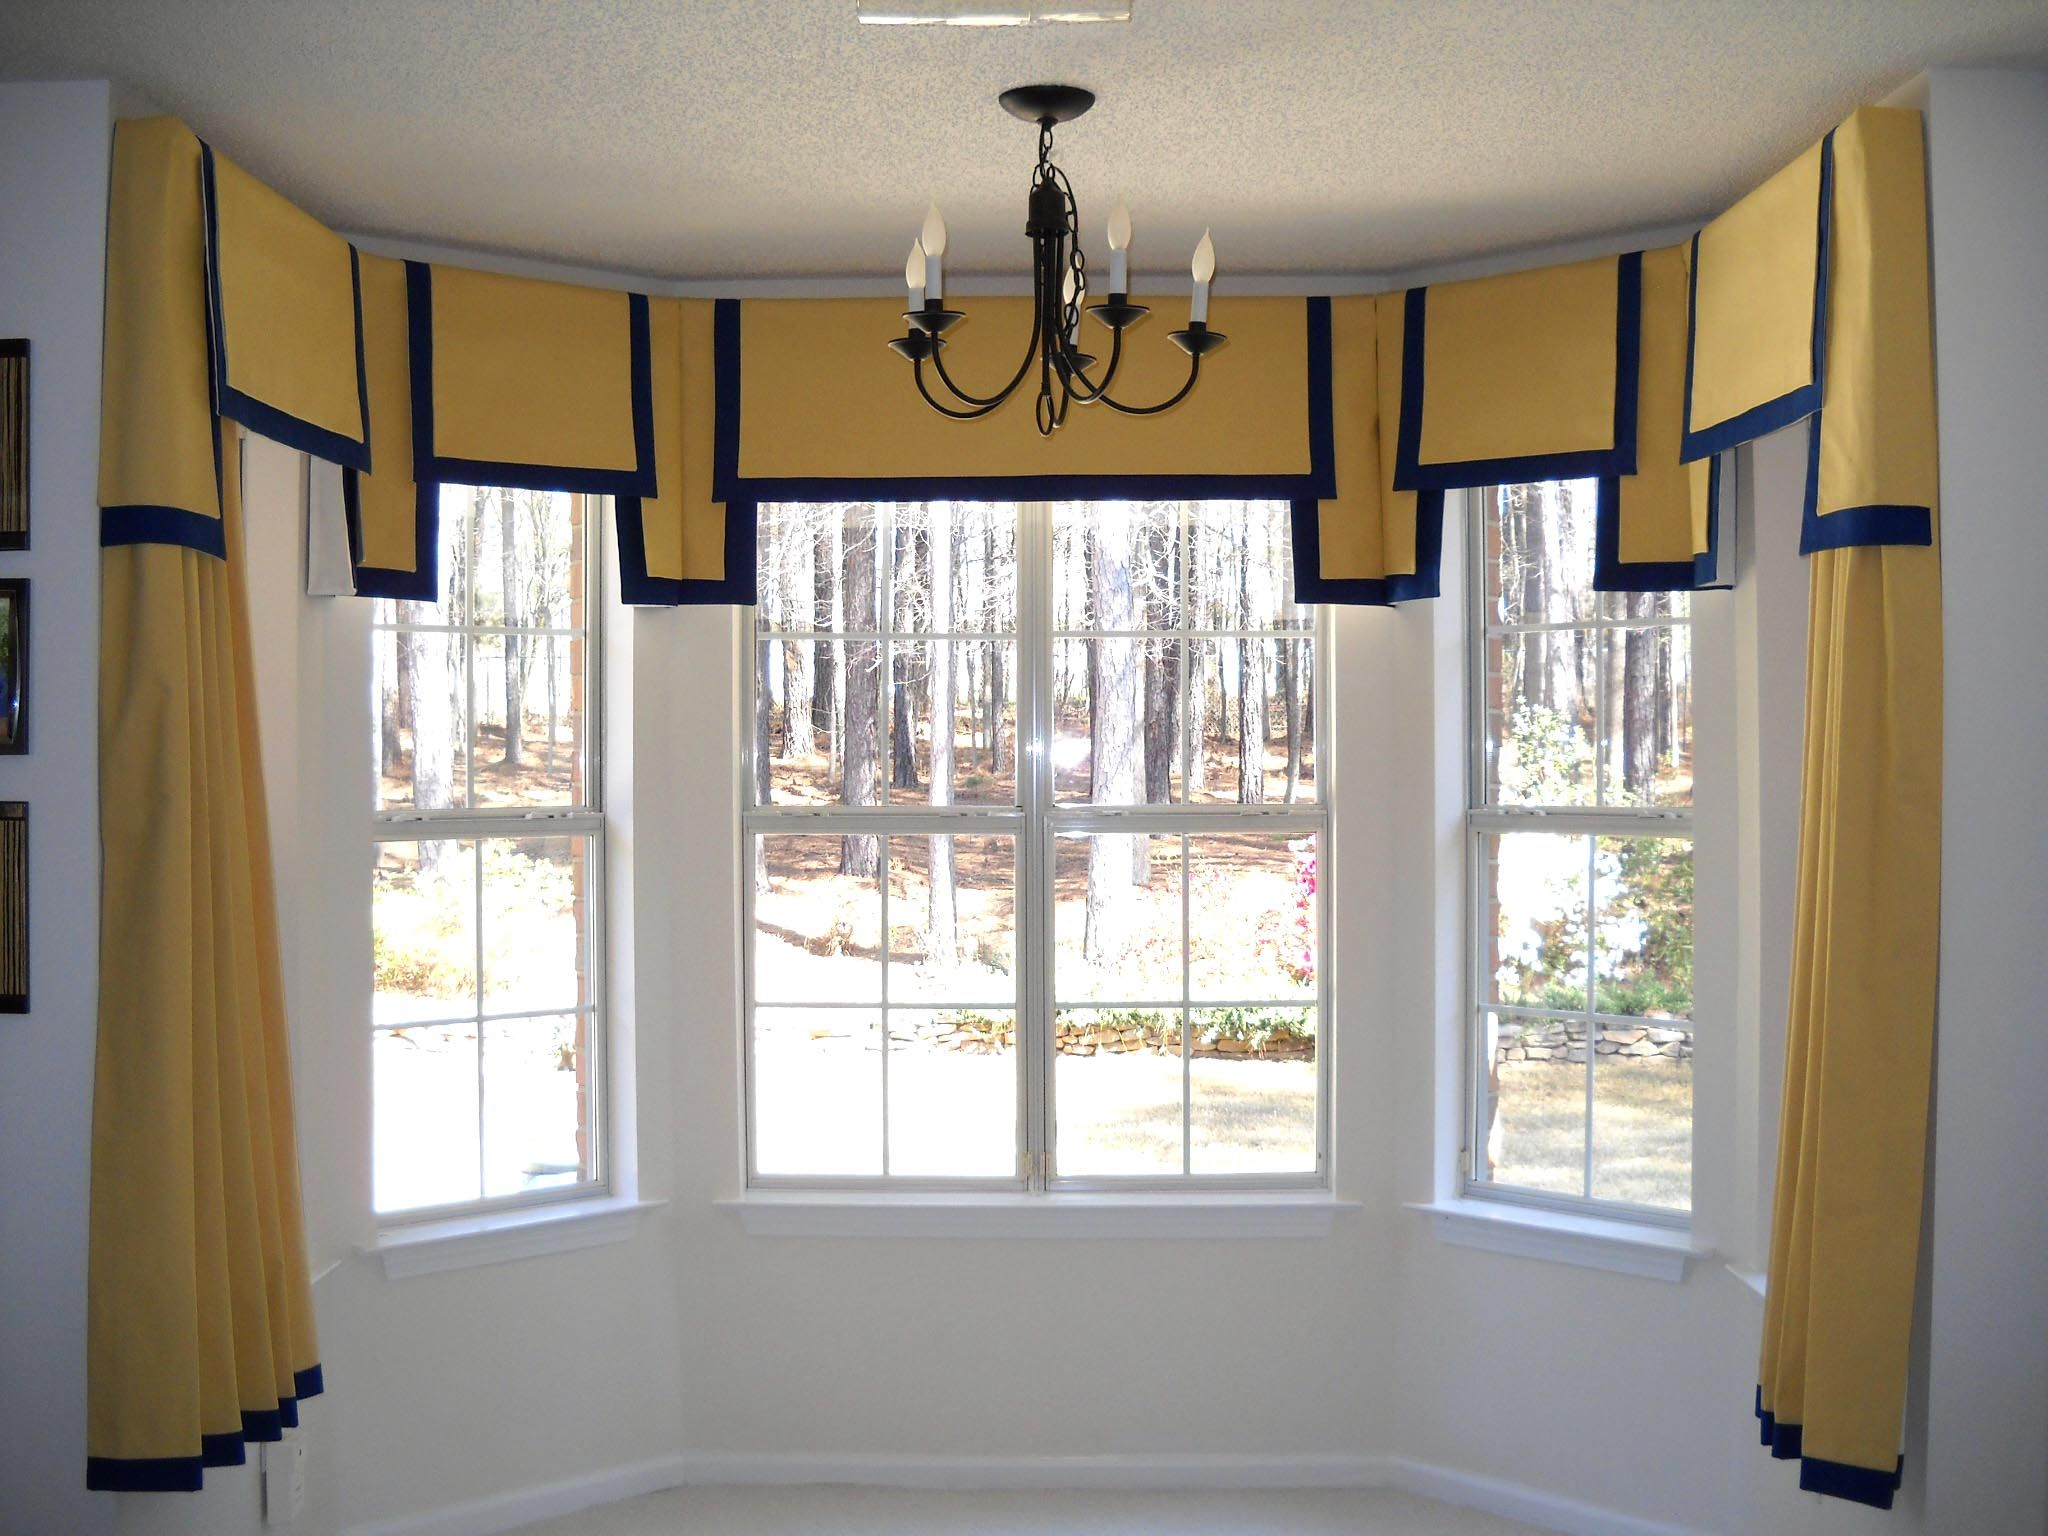 Window treatments for arched windows -  Windowtreatments Double Squares Valance On A 5 Sided Baywindow Panels Underneath With Accent Tall Windowsarched